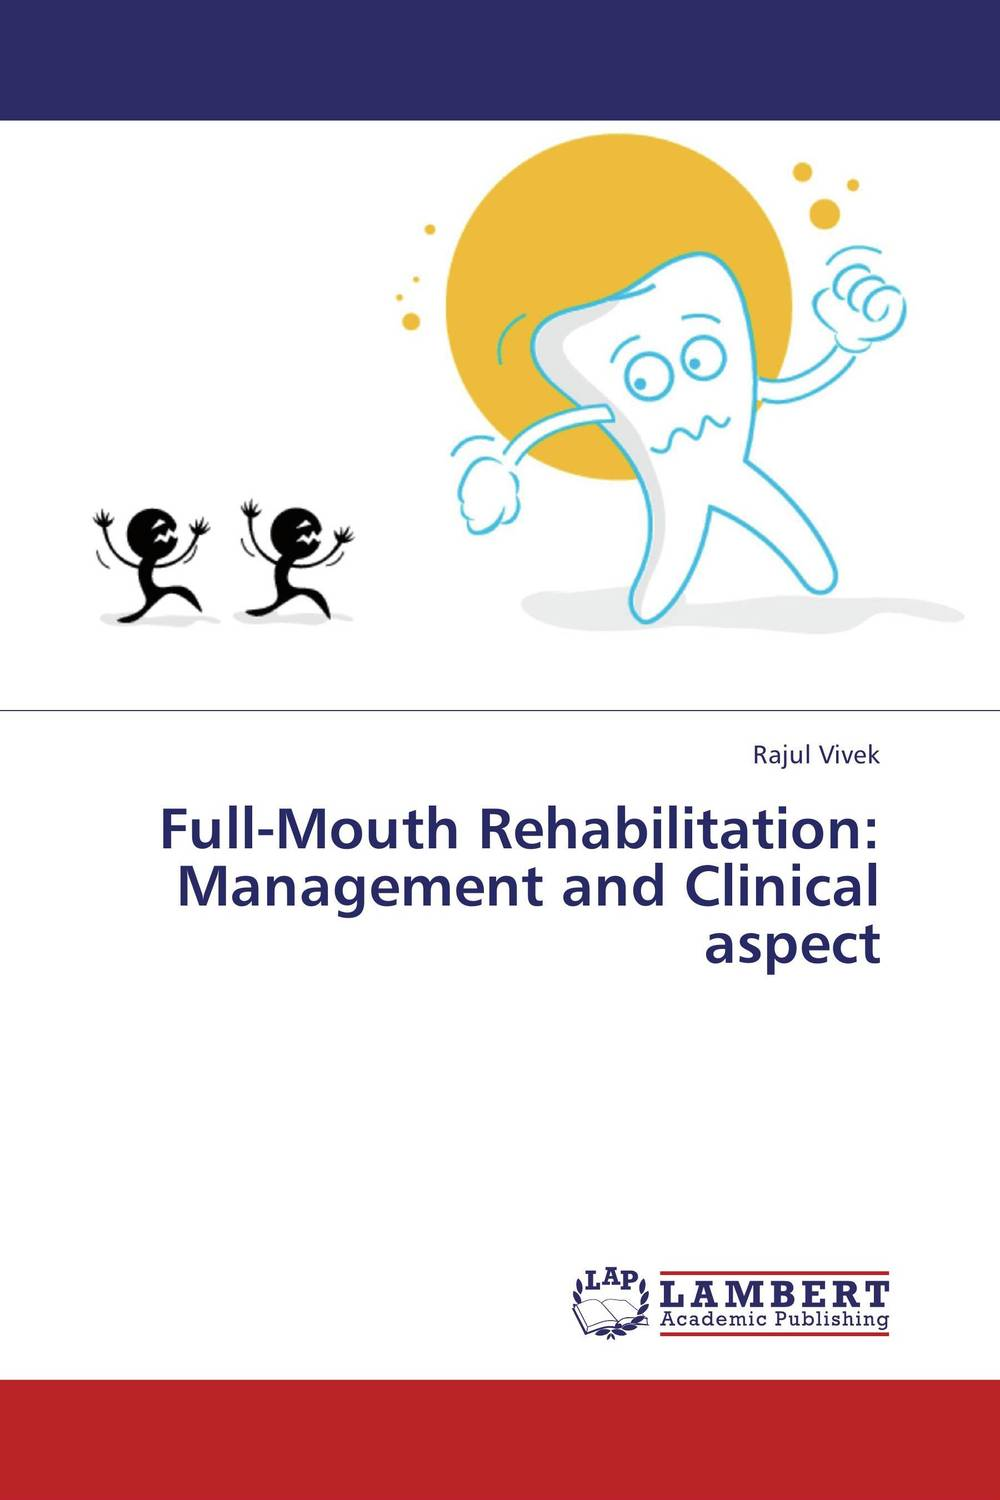 Full-Mouth Rehabilitation: Management and Clinical aspect psychiatric disorders in postpartum period